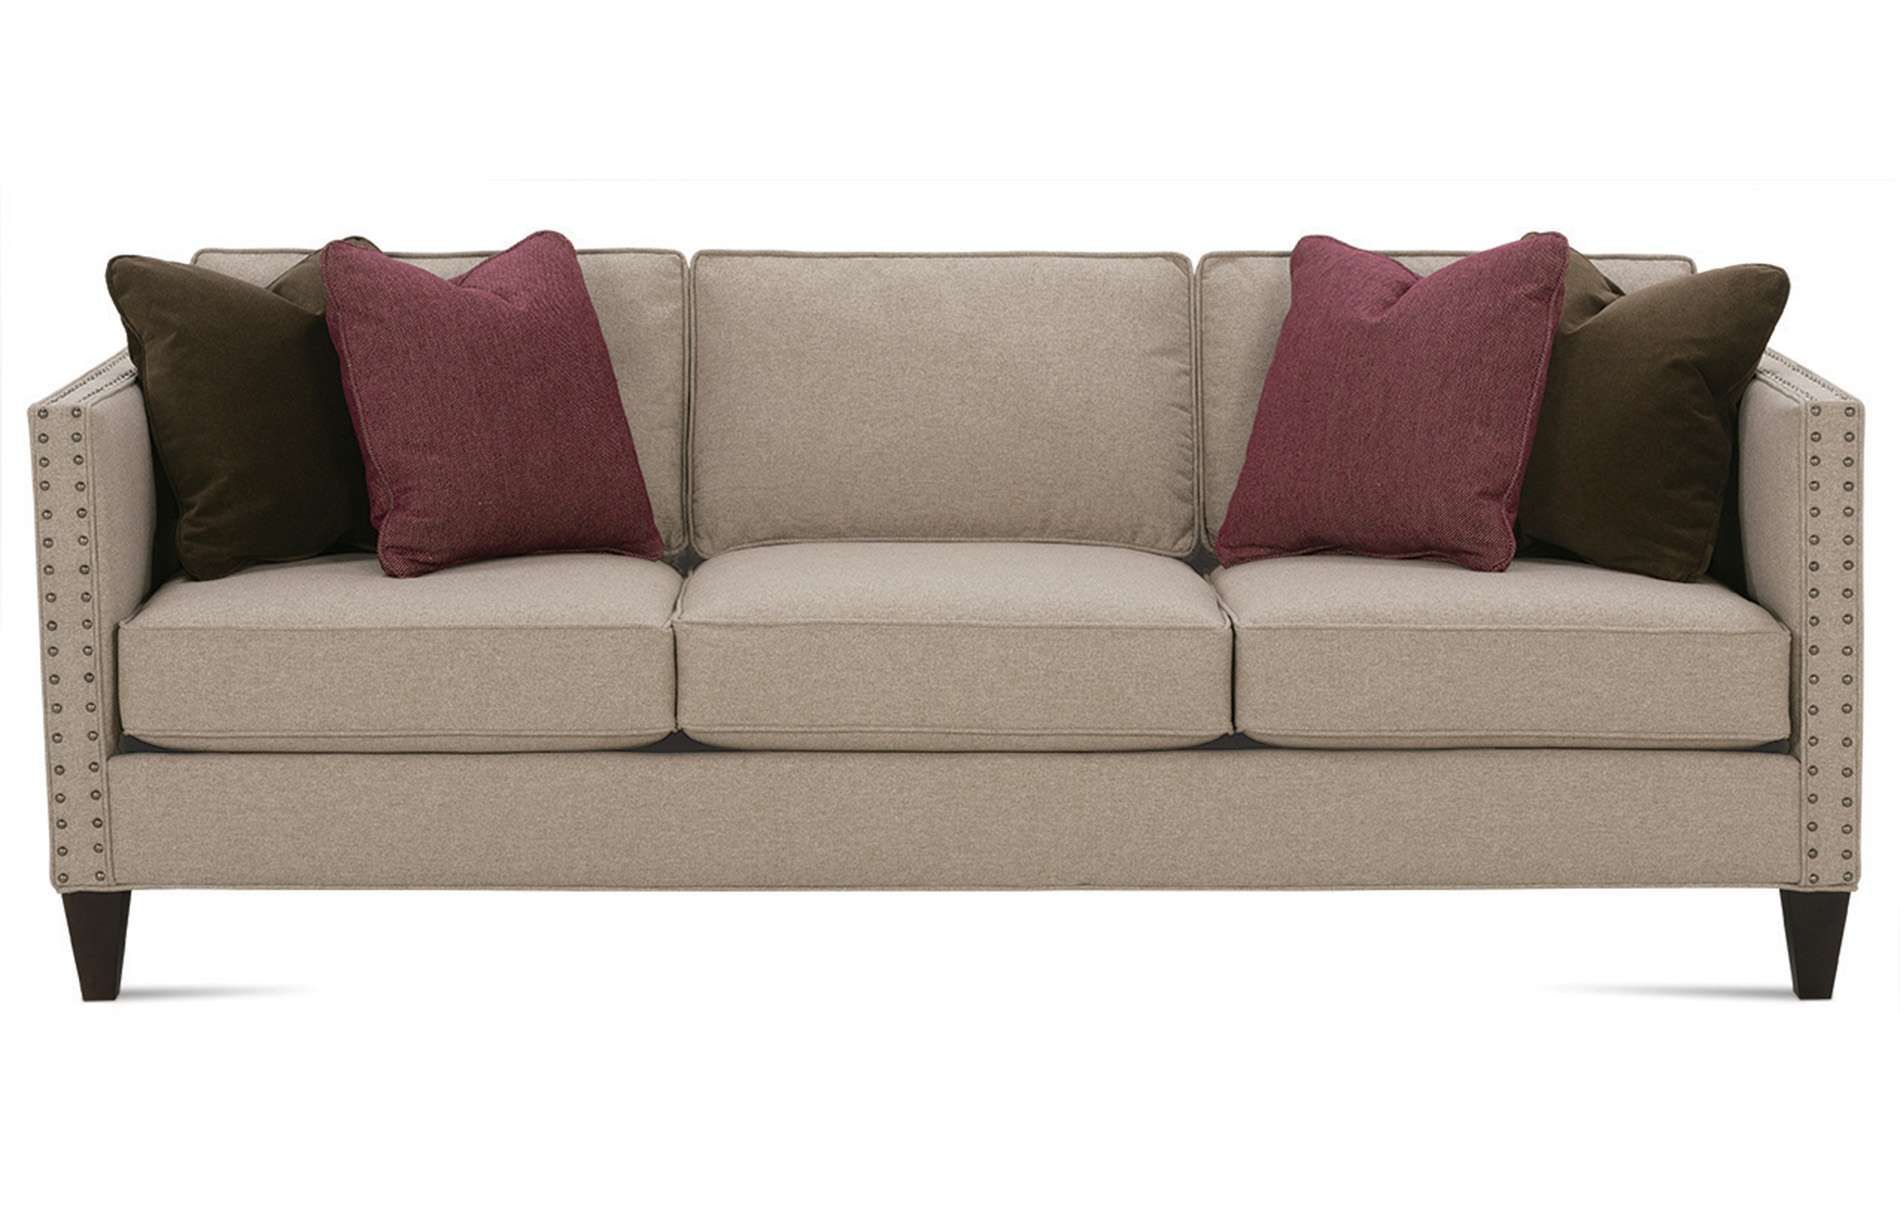 The Mitchell Sofa Combines Elegance With Modern Style To Create An  Exquisite Design From Rowe Furniture